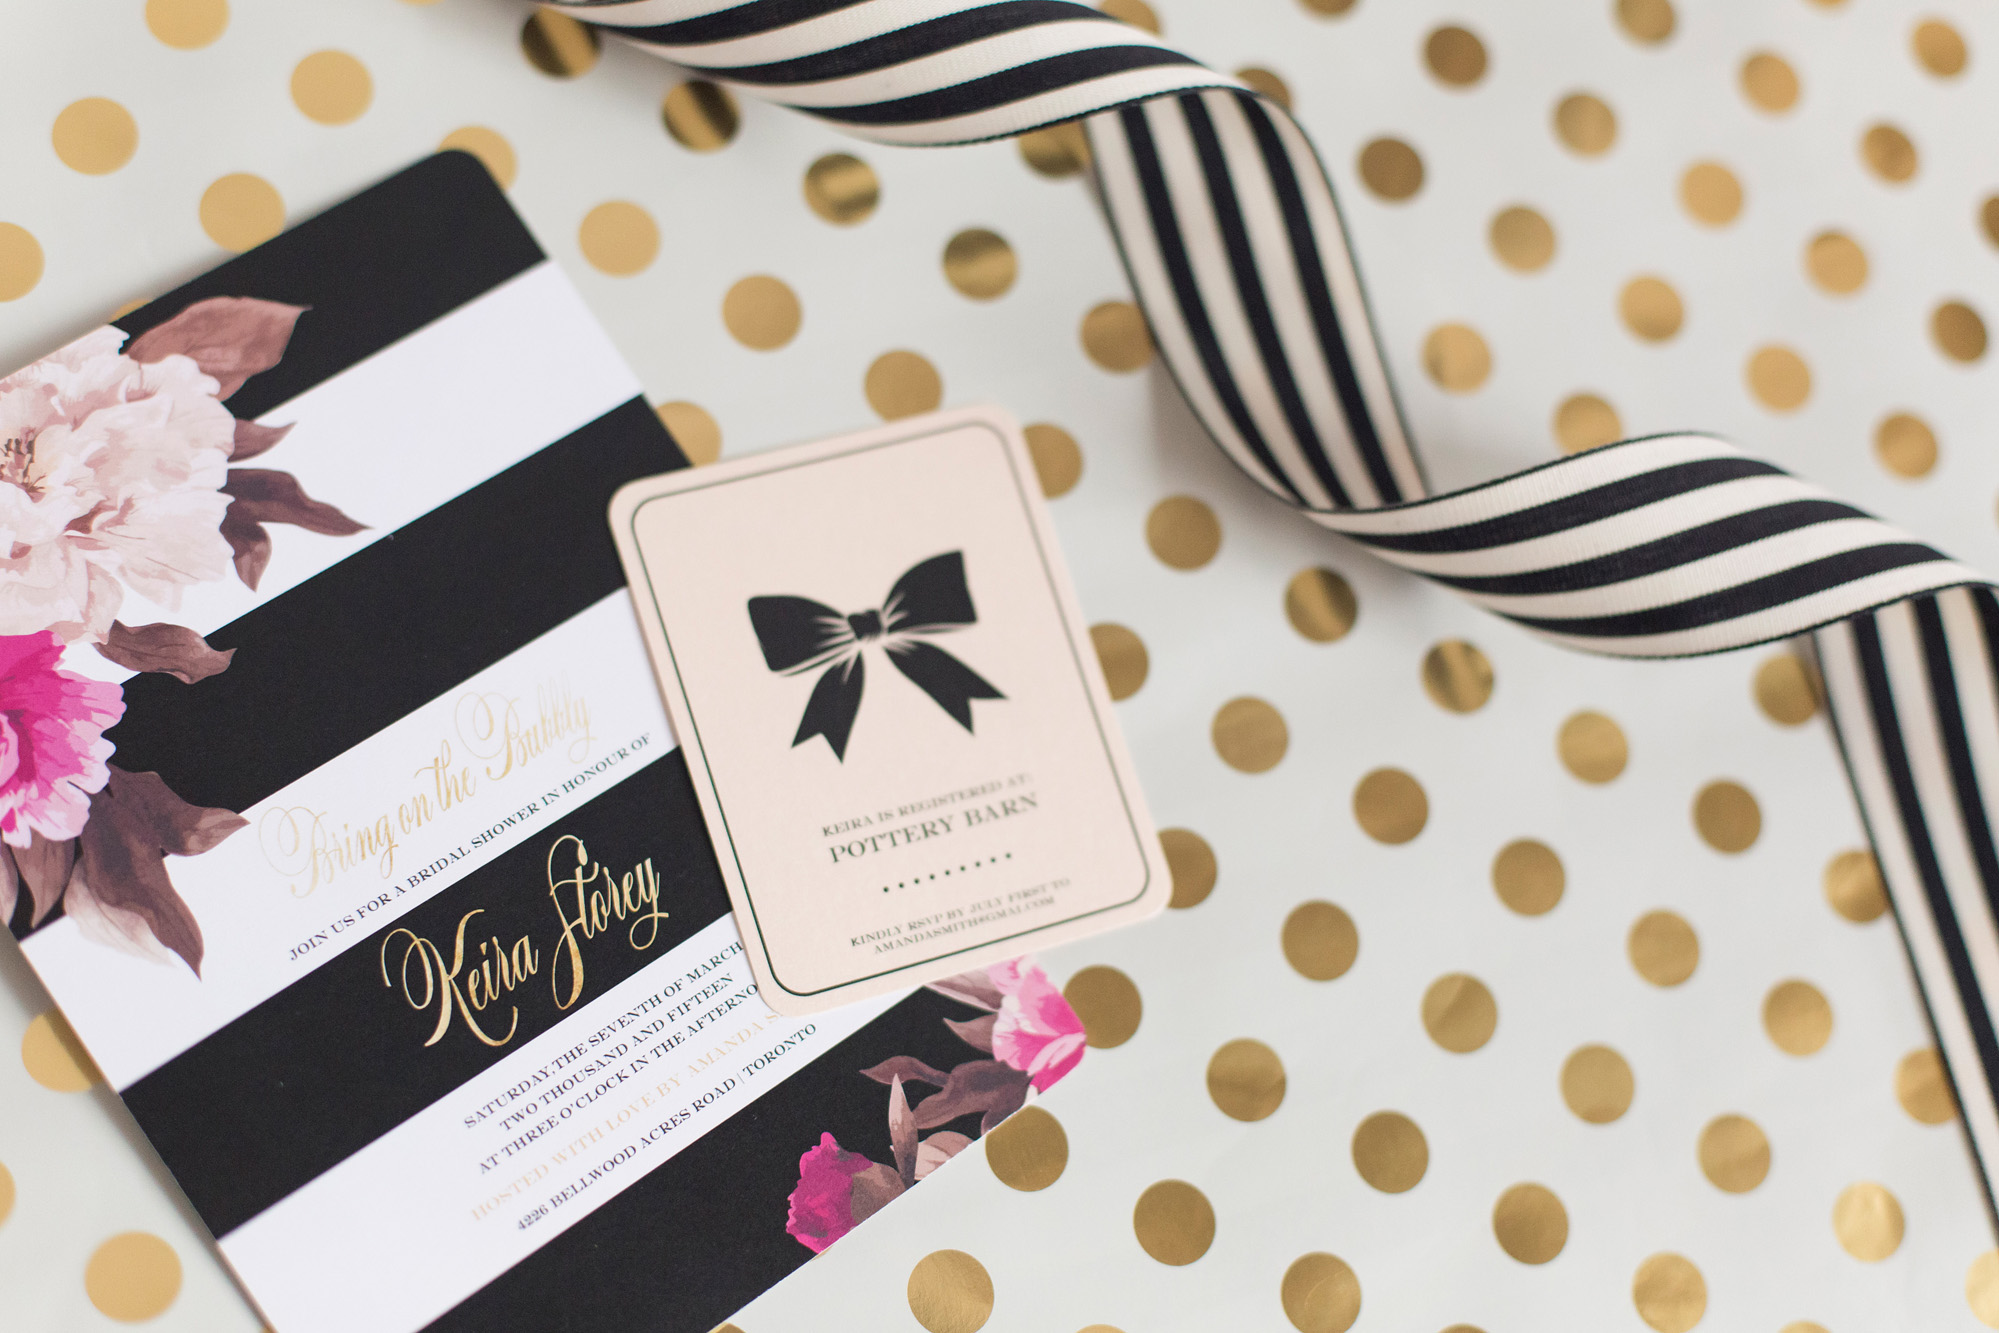 August In Bloom - Invitation - Kate Spade inspired black, white, with a pop of hot pink party